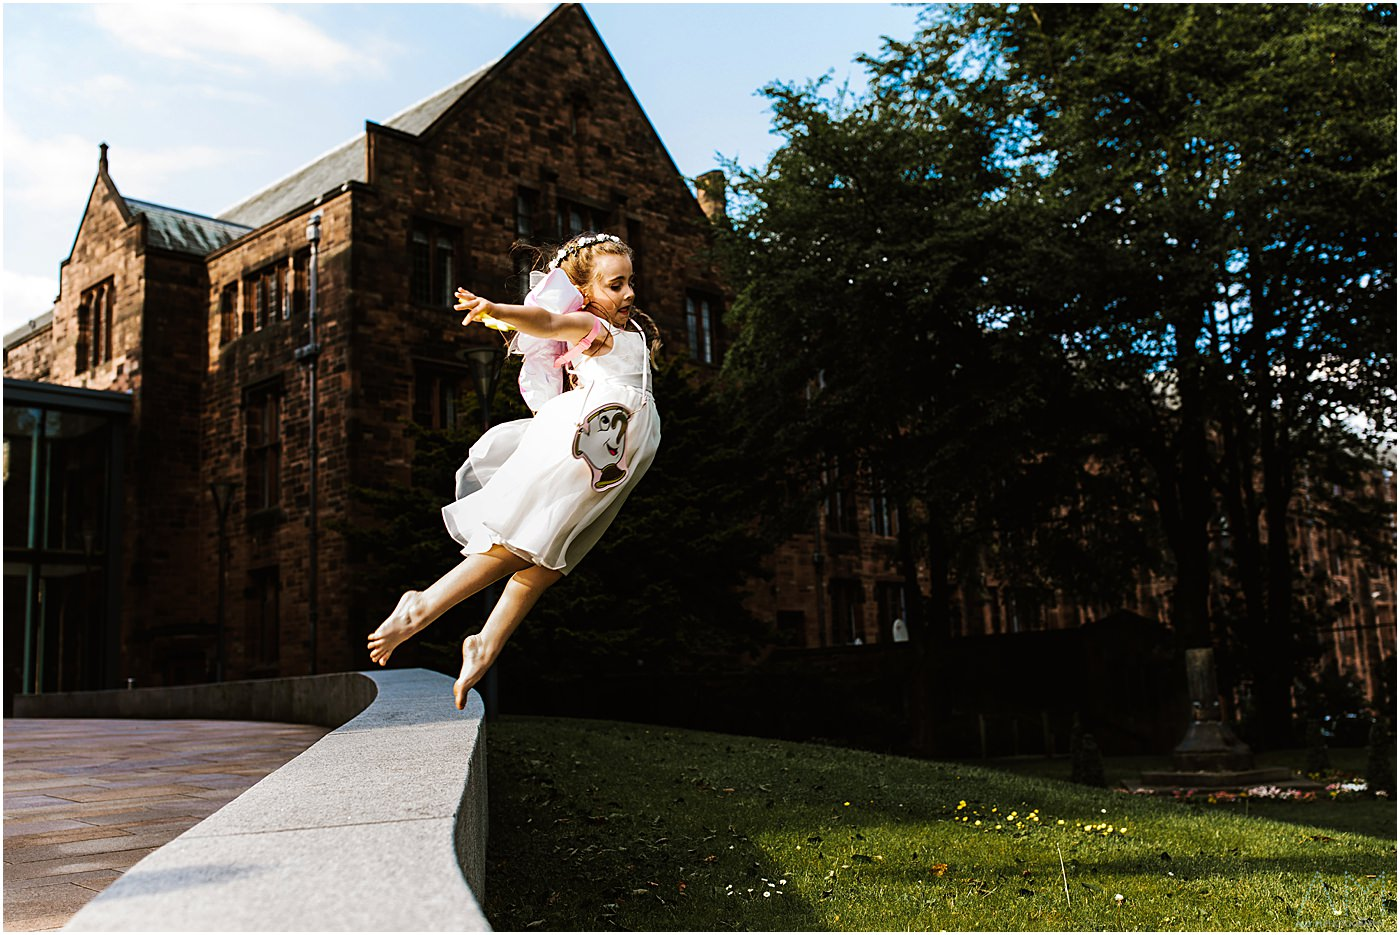 Flying girl at Bolton school